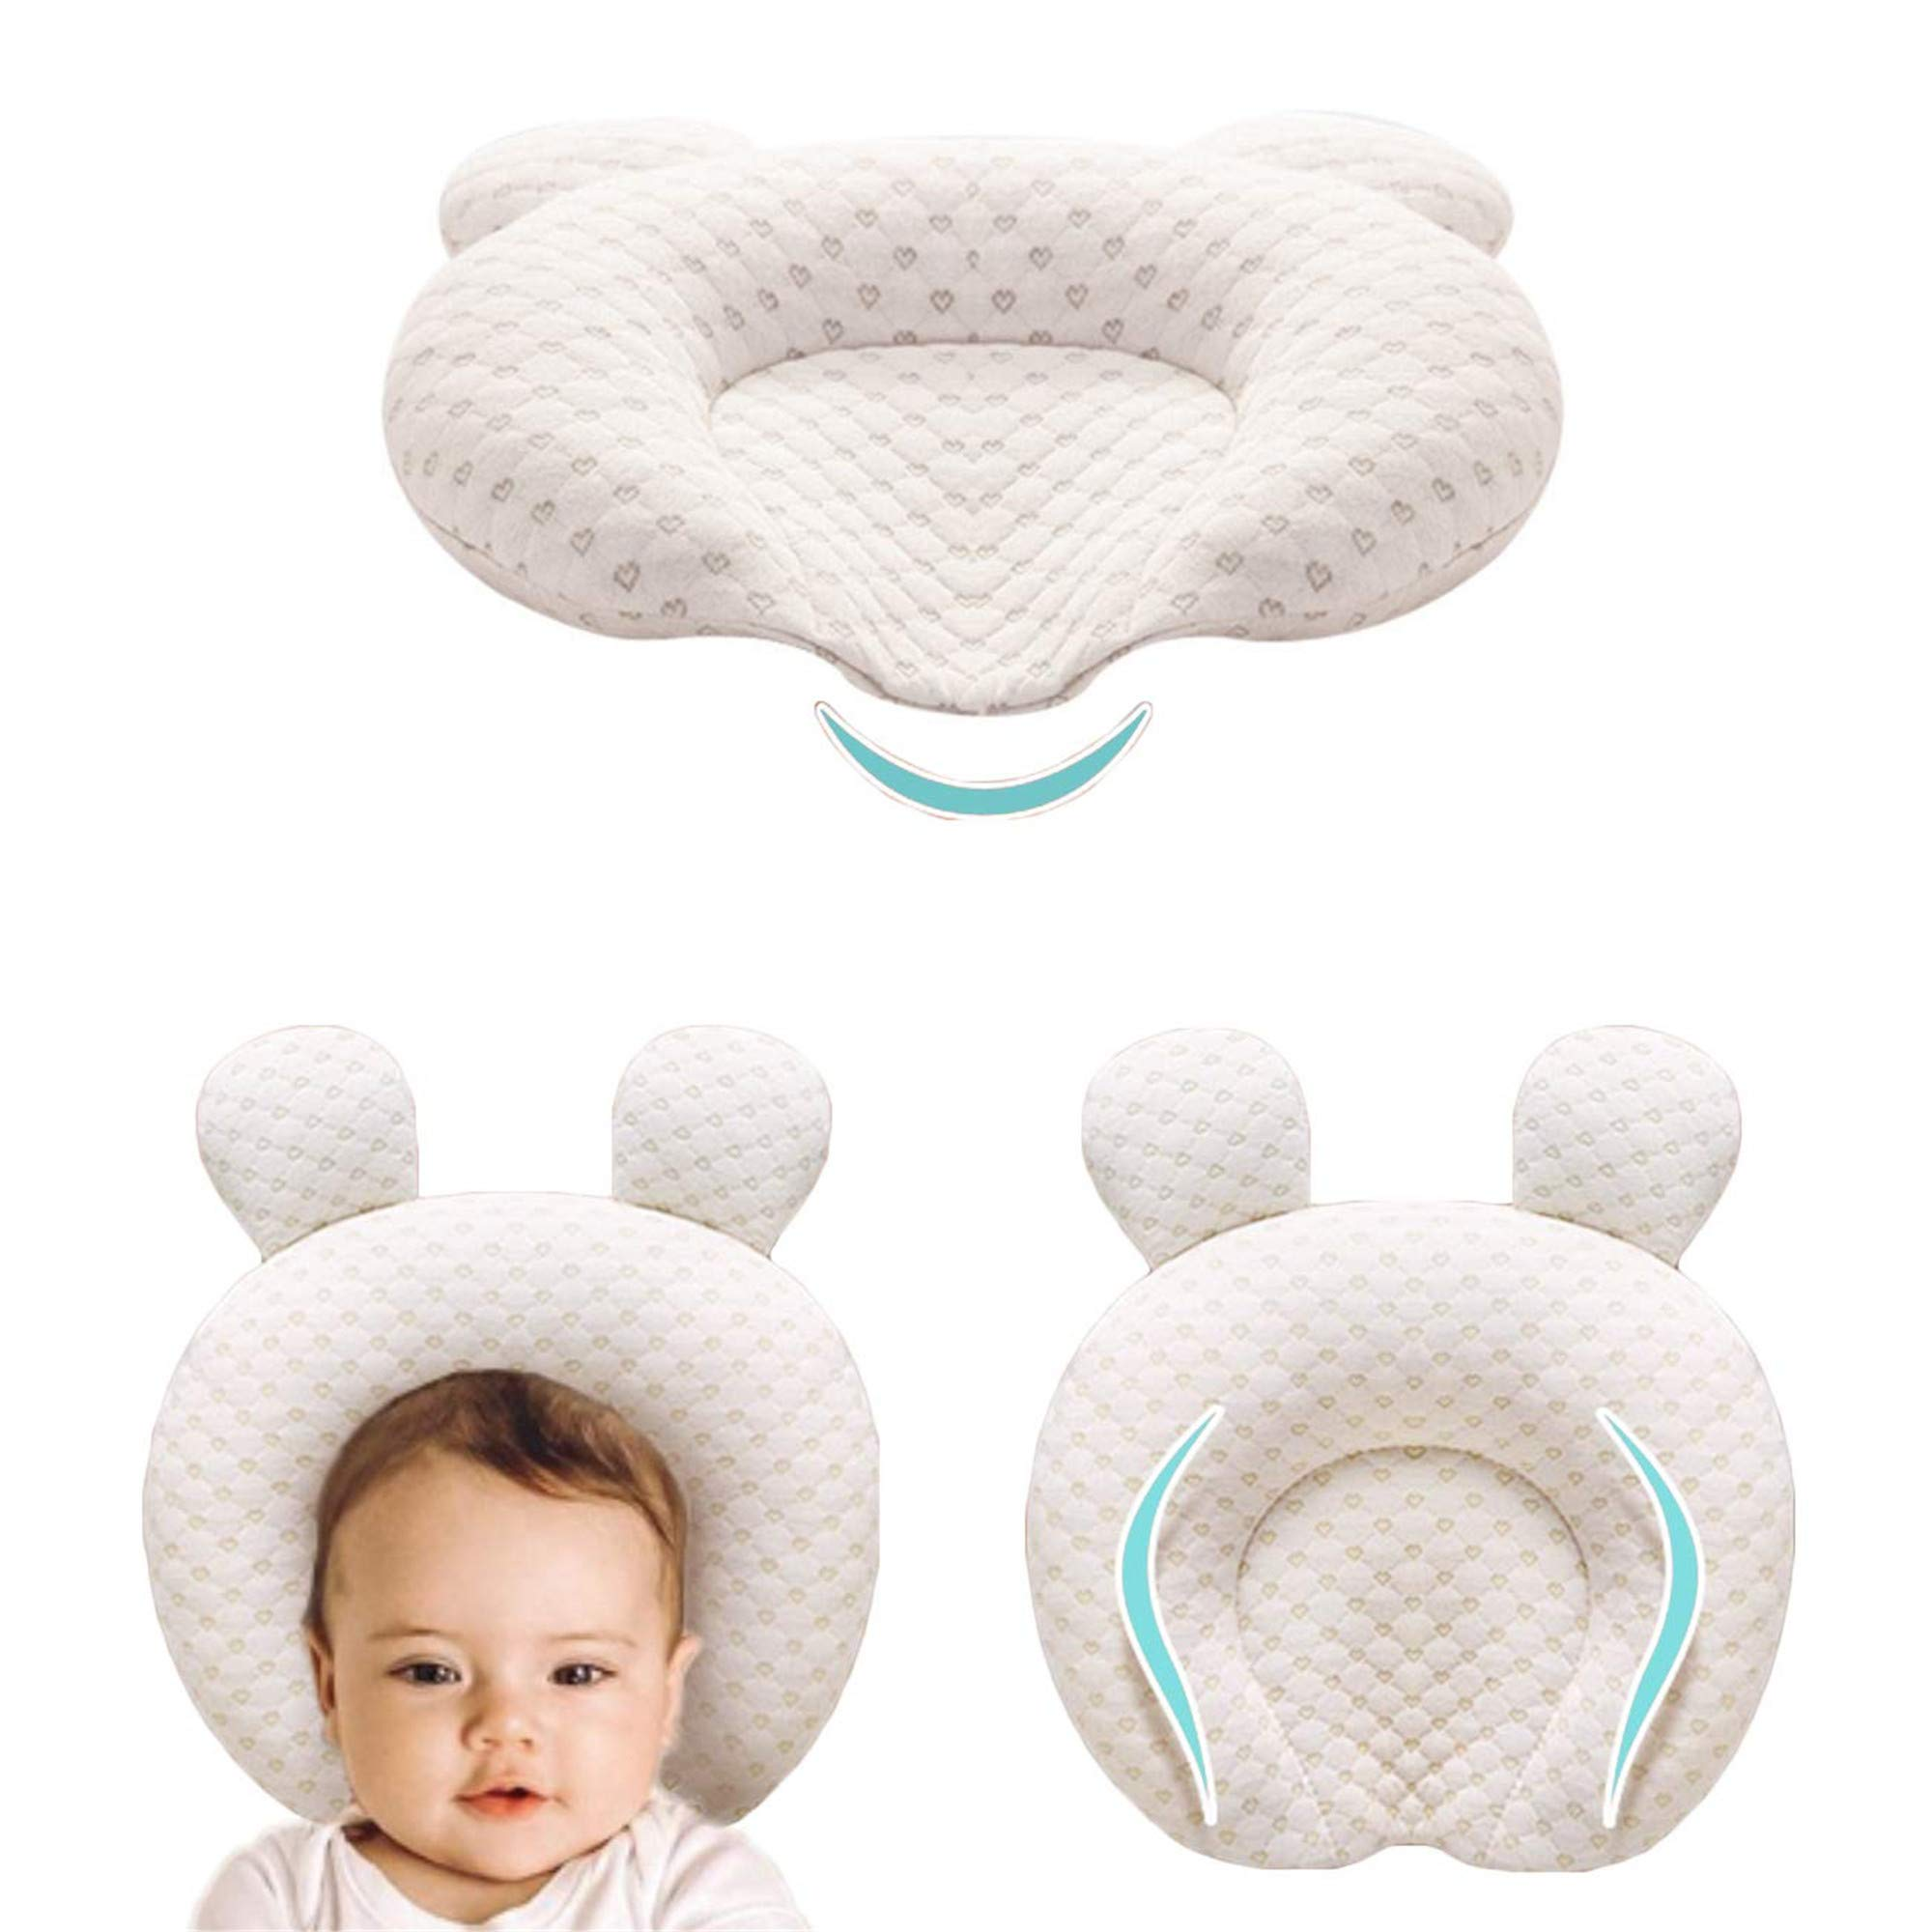 xmwealthy infant support head pillows